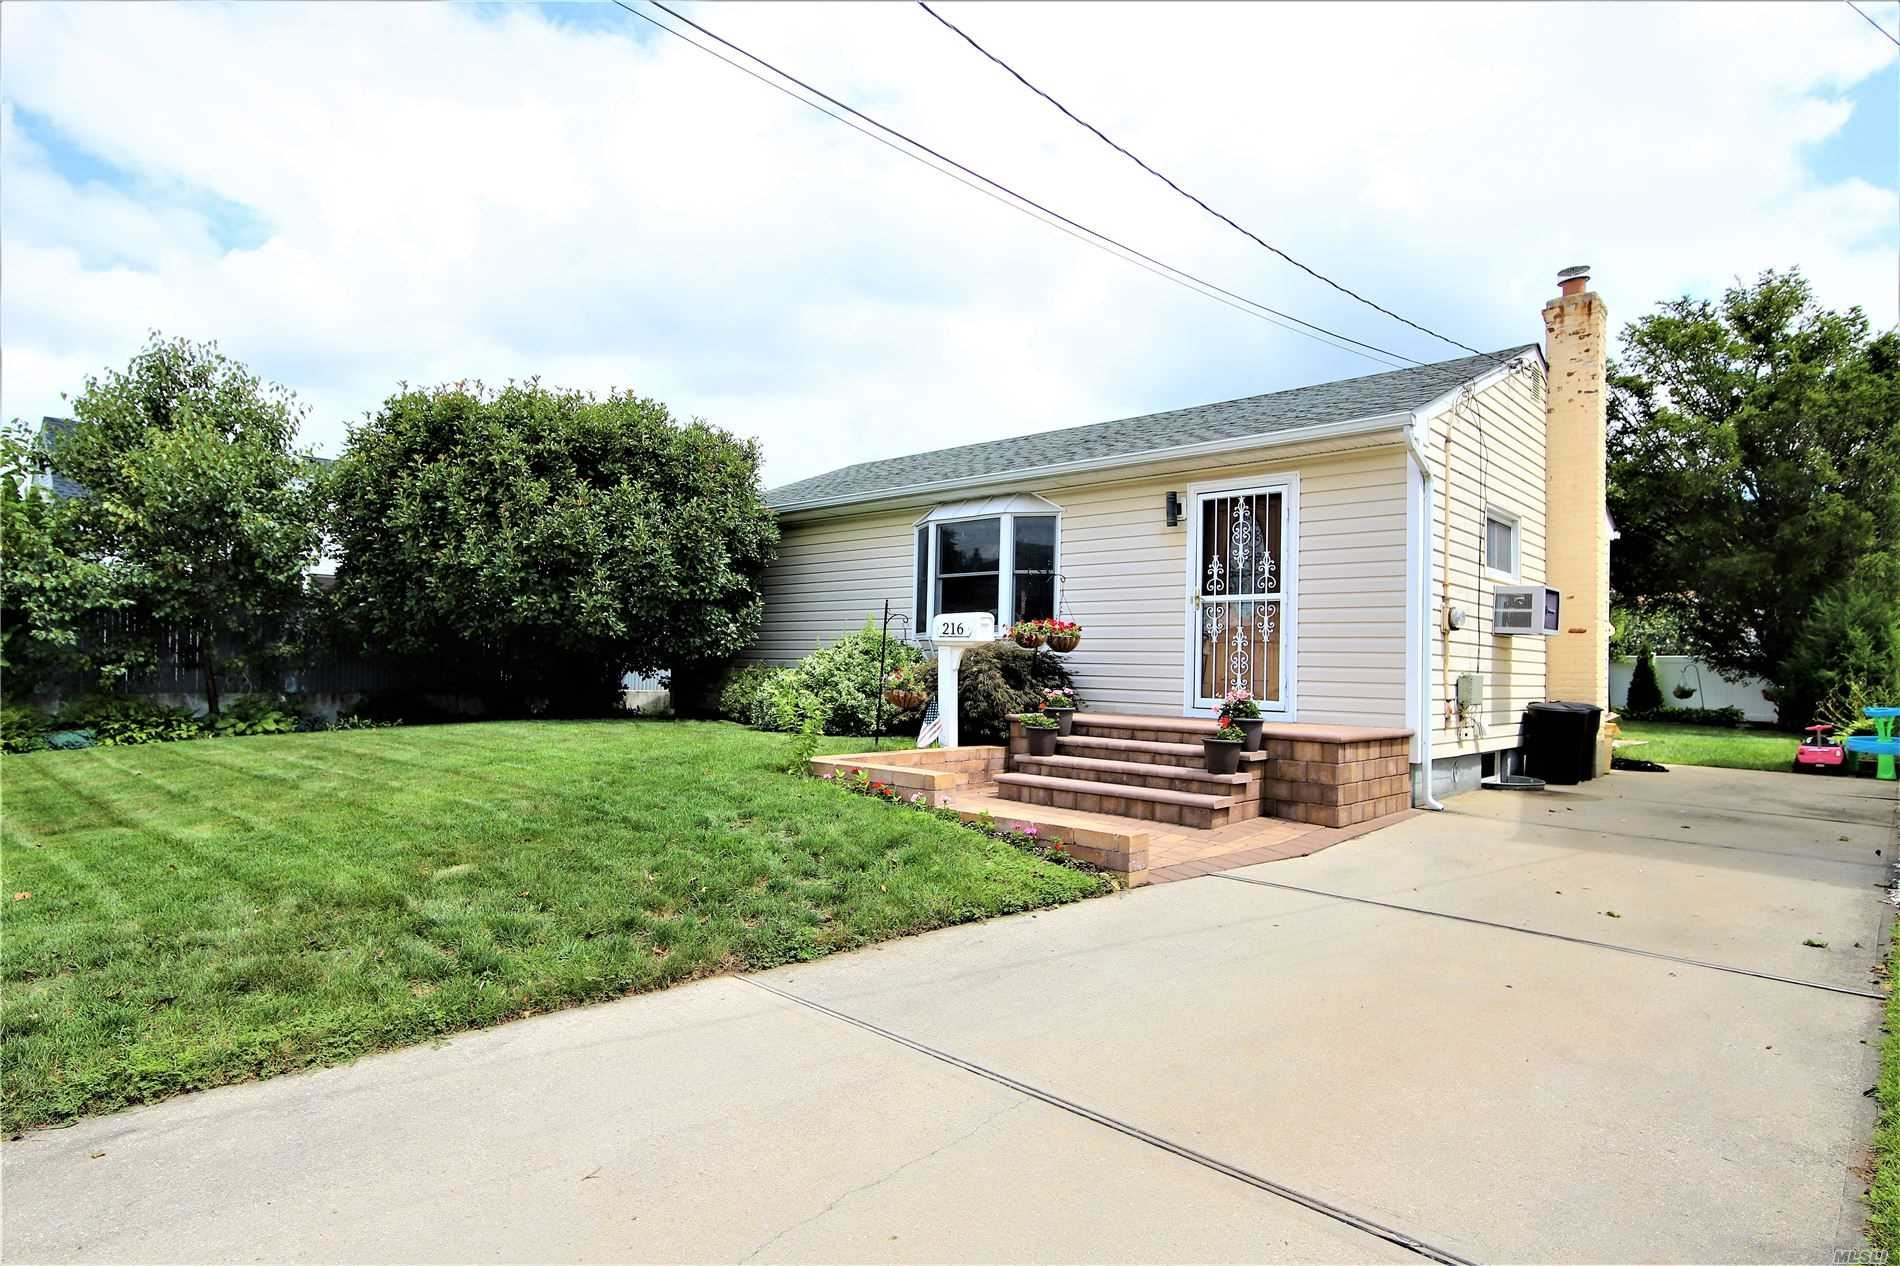 216 N 2nd St, Bethpage, NY 11714 - MLS#: 3240952